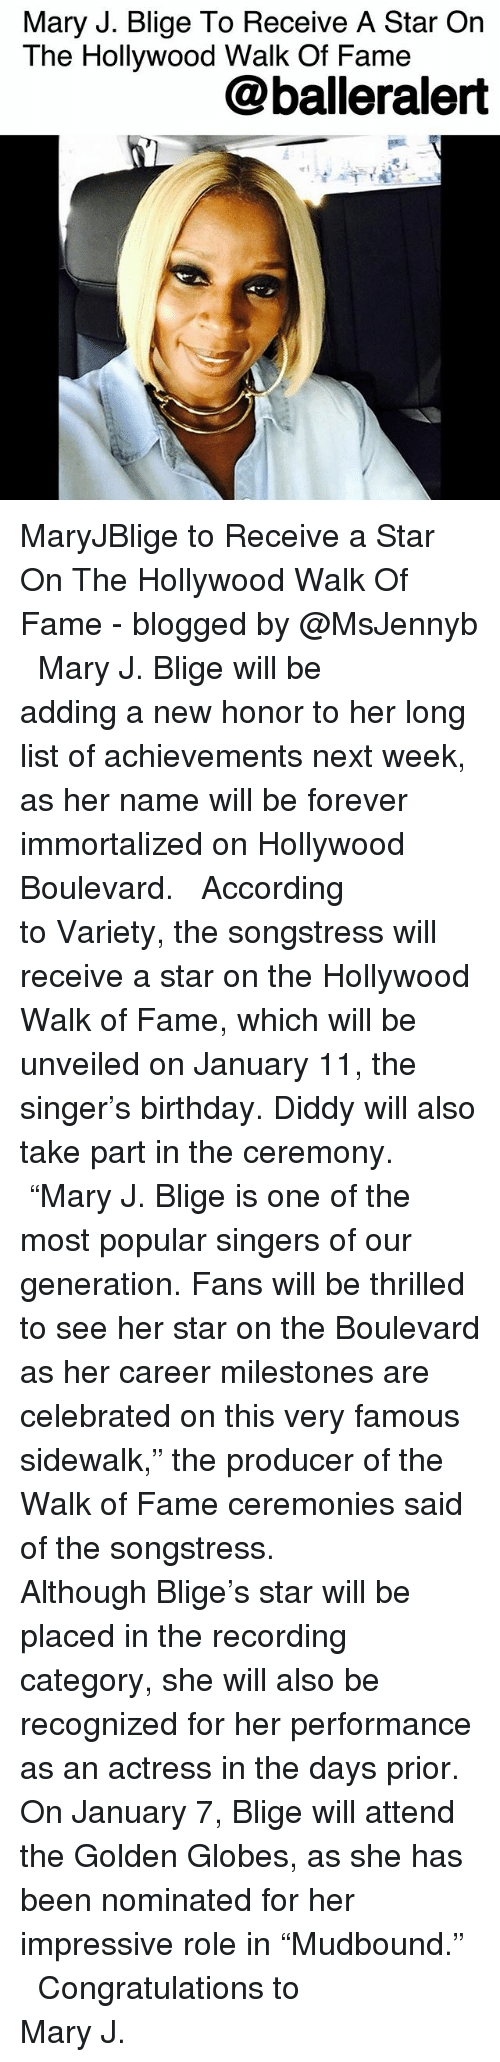 "Golden Globes: Mary J. Blige To Receive A Star On  The Hollywood Walk Of Famee  @balleralert MaryJBlige to Receive a Star On The Hollywood Walk Of Fame - blogged by @MsJennyb ⠀⠀⠀⠀⠀⠀⠀ ⠀⠀⠀⠀⠀⠀⠀ Mary J. Blige will be adding a new honor to her long list of achievements next week, as her name will be forever immortalized on Hollywood Boulevard. ⠀⠀⠀⠀⠀⠀⠀ ⠀⠀⠀⠀⠀⠀⠀ According to Variety, the songstress will receive a star on the Hollywood Walk of Fame, which will be unveiled on January 11, the singer's birthday. Diddy will also take part in the ceremony. ⠀⠀⠀⠀⠀⠀⠀ ⠀⠀⠀⠀⠀⠀⠀ ""Mary J. Blige is one of the most popular singers of our generation. Fans will be thrilled to see her star on the Boulevard as her career milestones are celebrated on this very famous sidewalk,"" the producer of the Walk of Fame ceremonies said of the songstress. ⠀⠀⠀⠀⠀⠀⠀ ⠀⠀⠀⠀⠀⠀⠀ Although Blige's star will be placed in the recording category, she will also be recognized for her performance as an actress in the days prior. On January 7, Blige will attend the Golden Globes, as she has been nominated for her impressive role in ""Mudbound."" ⠀⠀⠀⠀⠀⠀⠀ ⠀⠀⠀⠀⠀⠀⠀ Congratulations to Mary J."